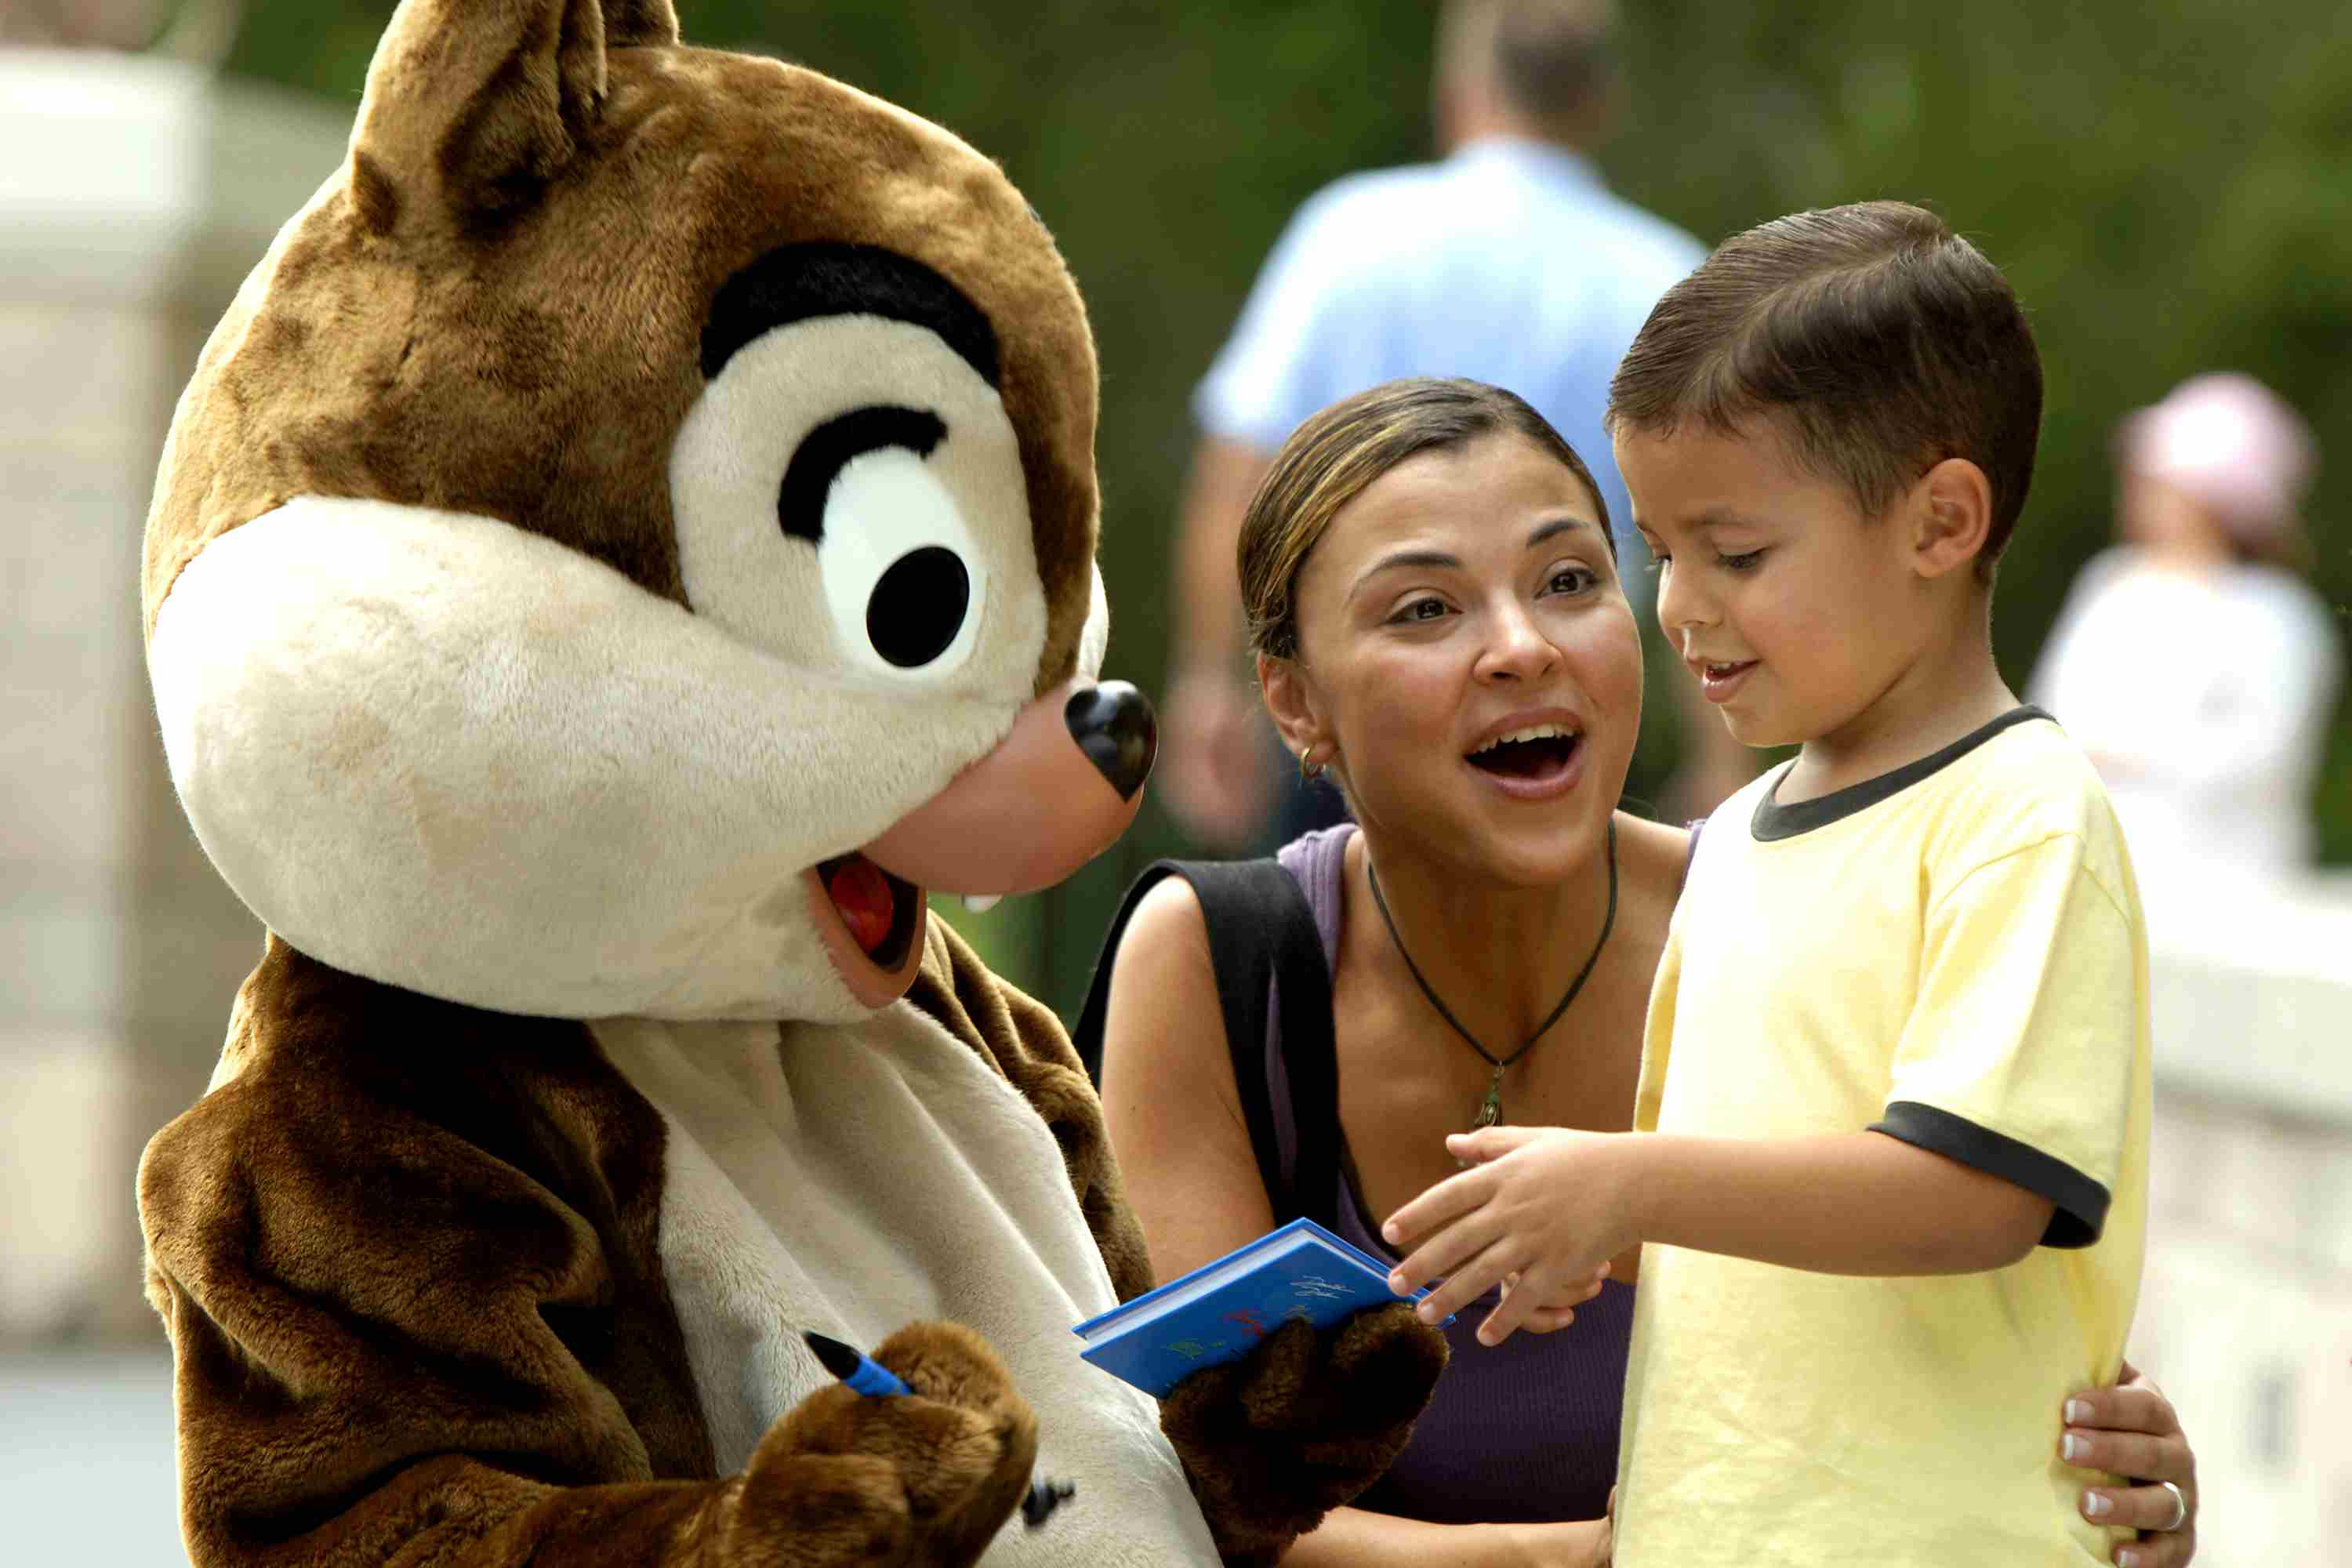 WDW-Character-ChipDale-Autograph.jpg